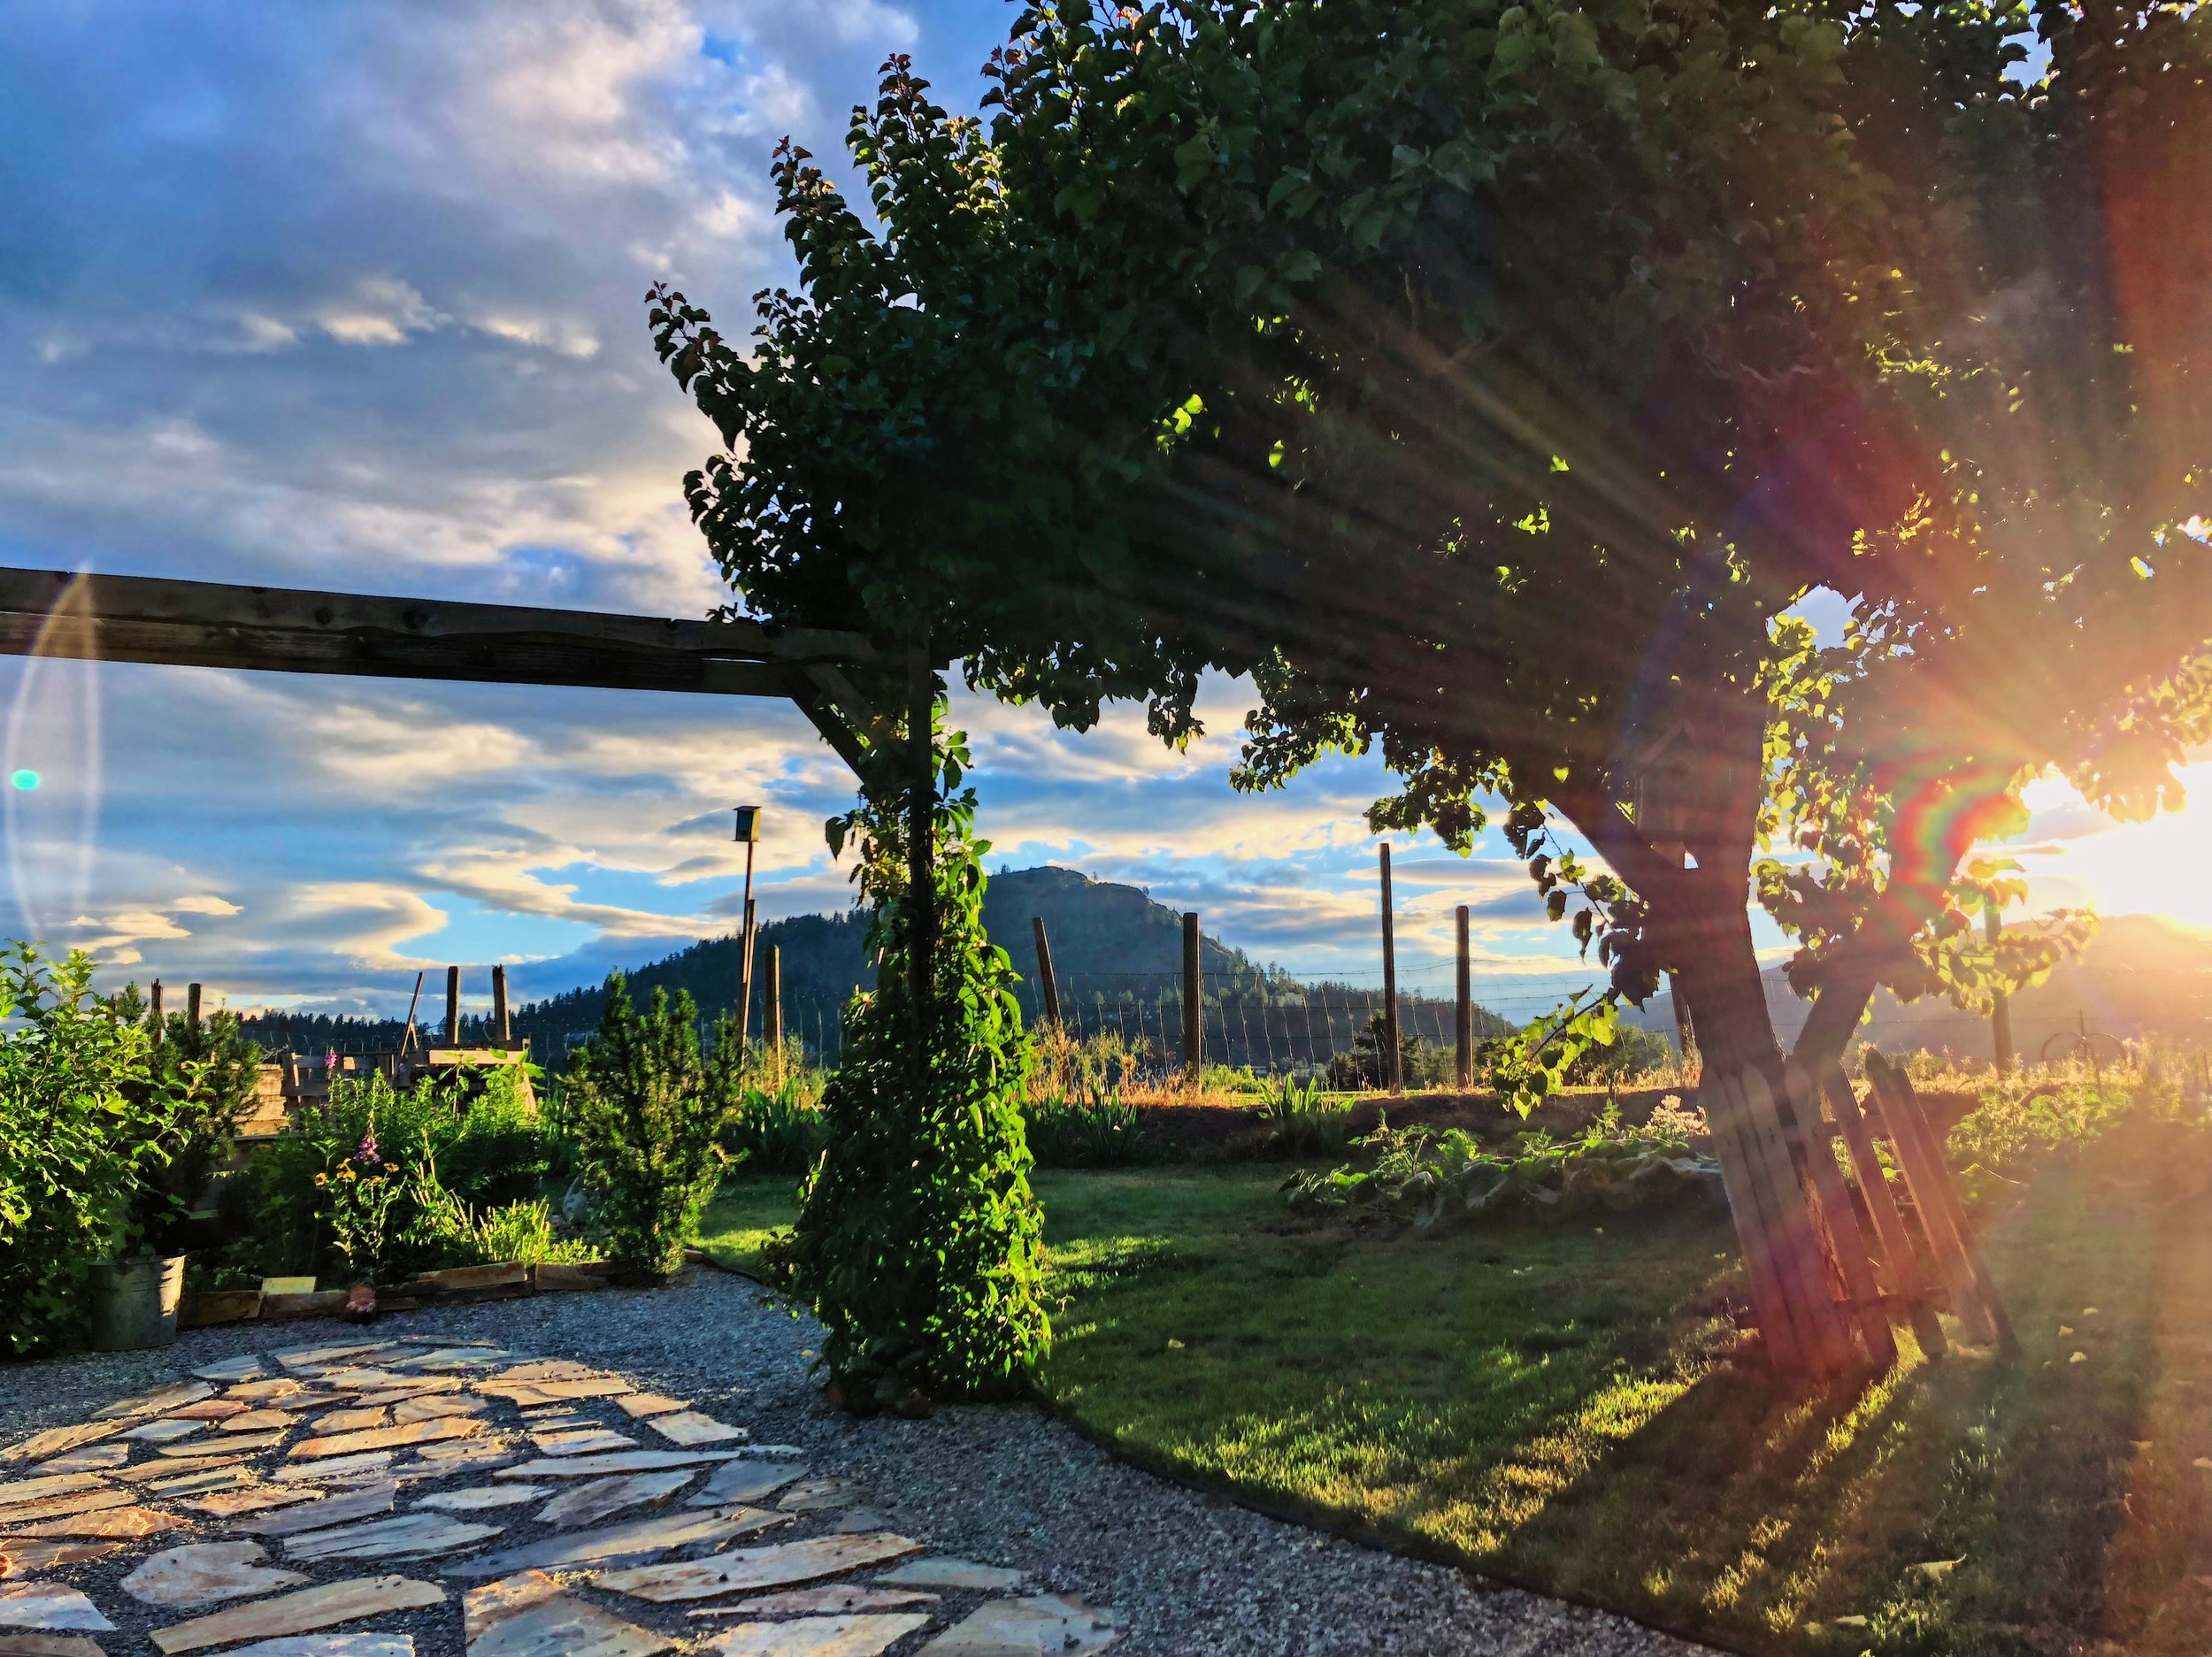 Mom and Dad's backyard - Lakeview Heights, West Kelowna